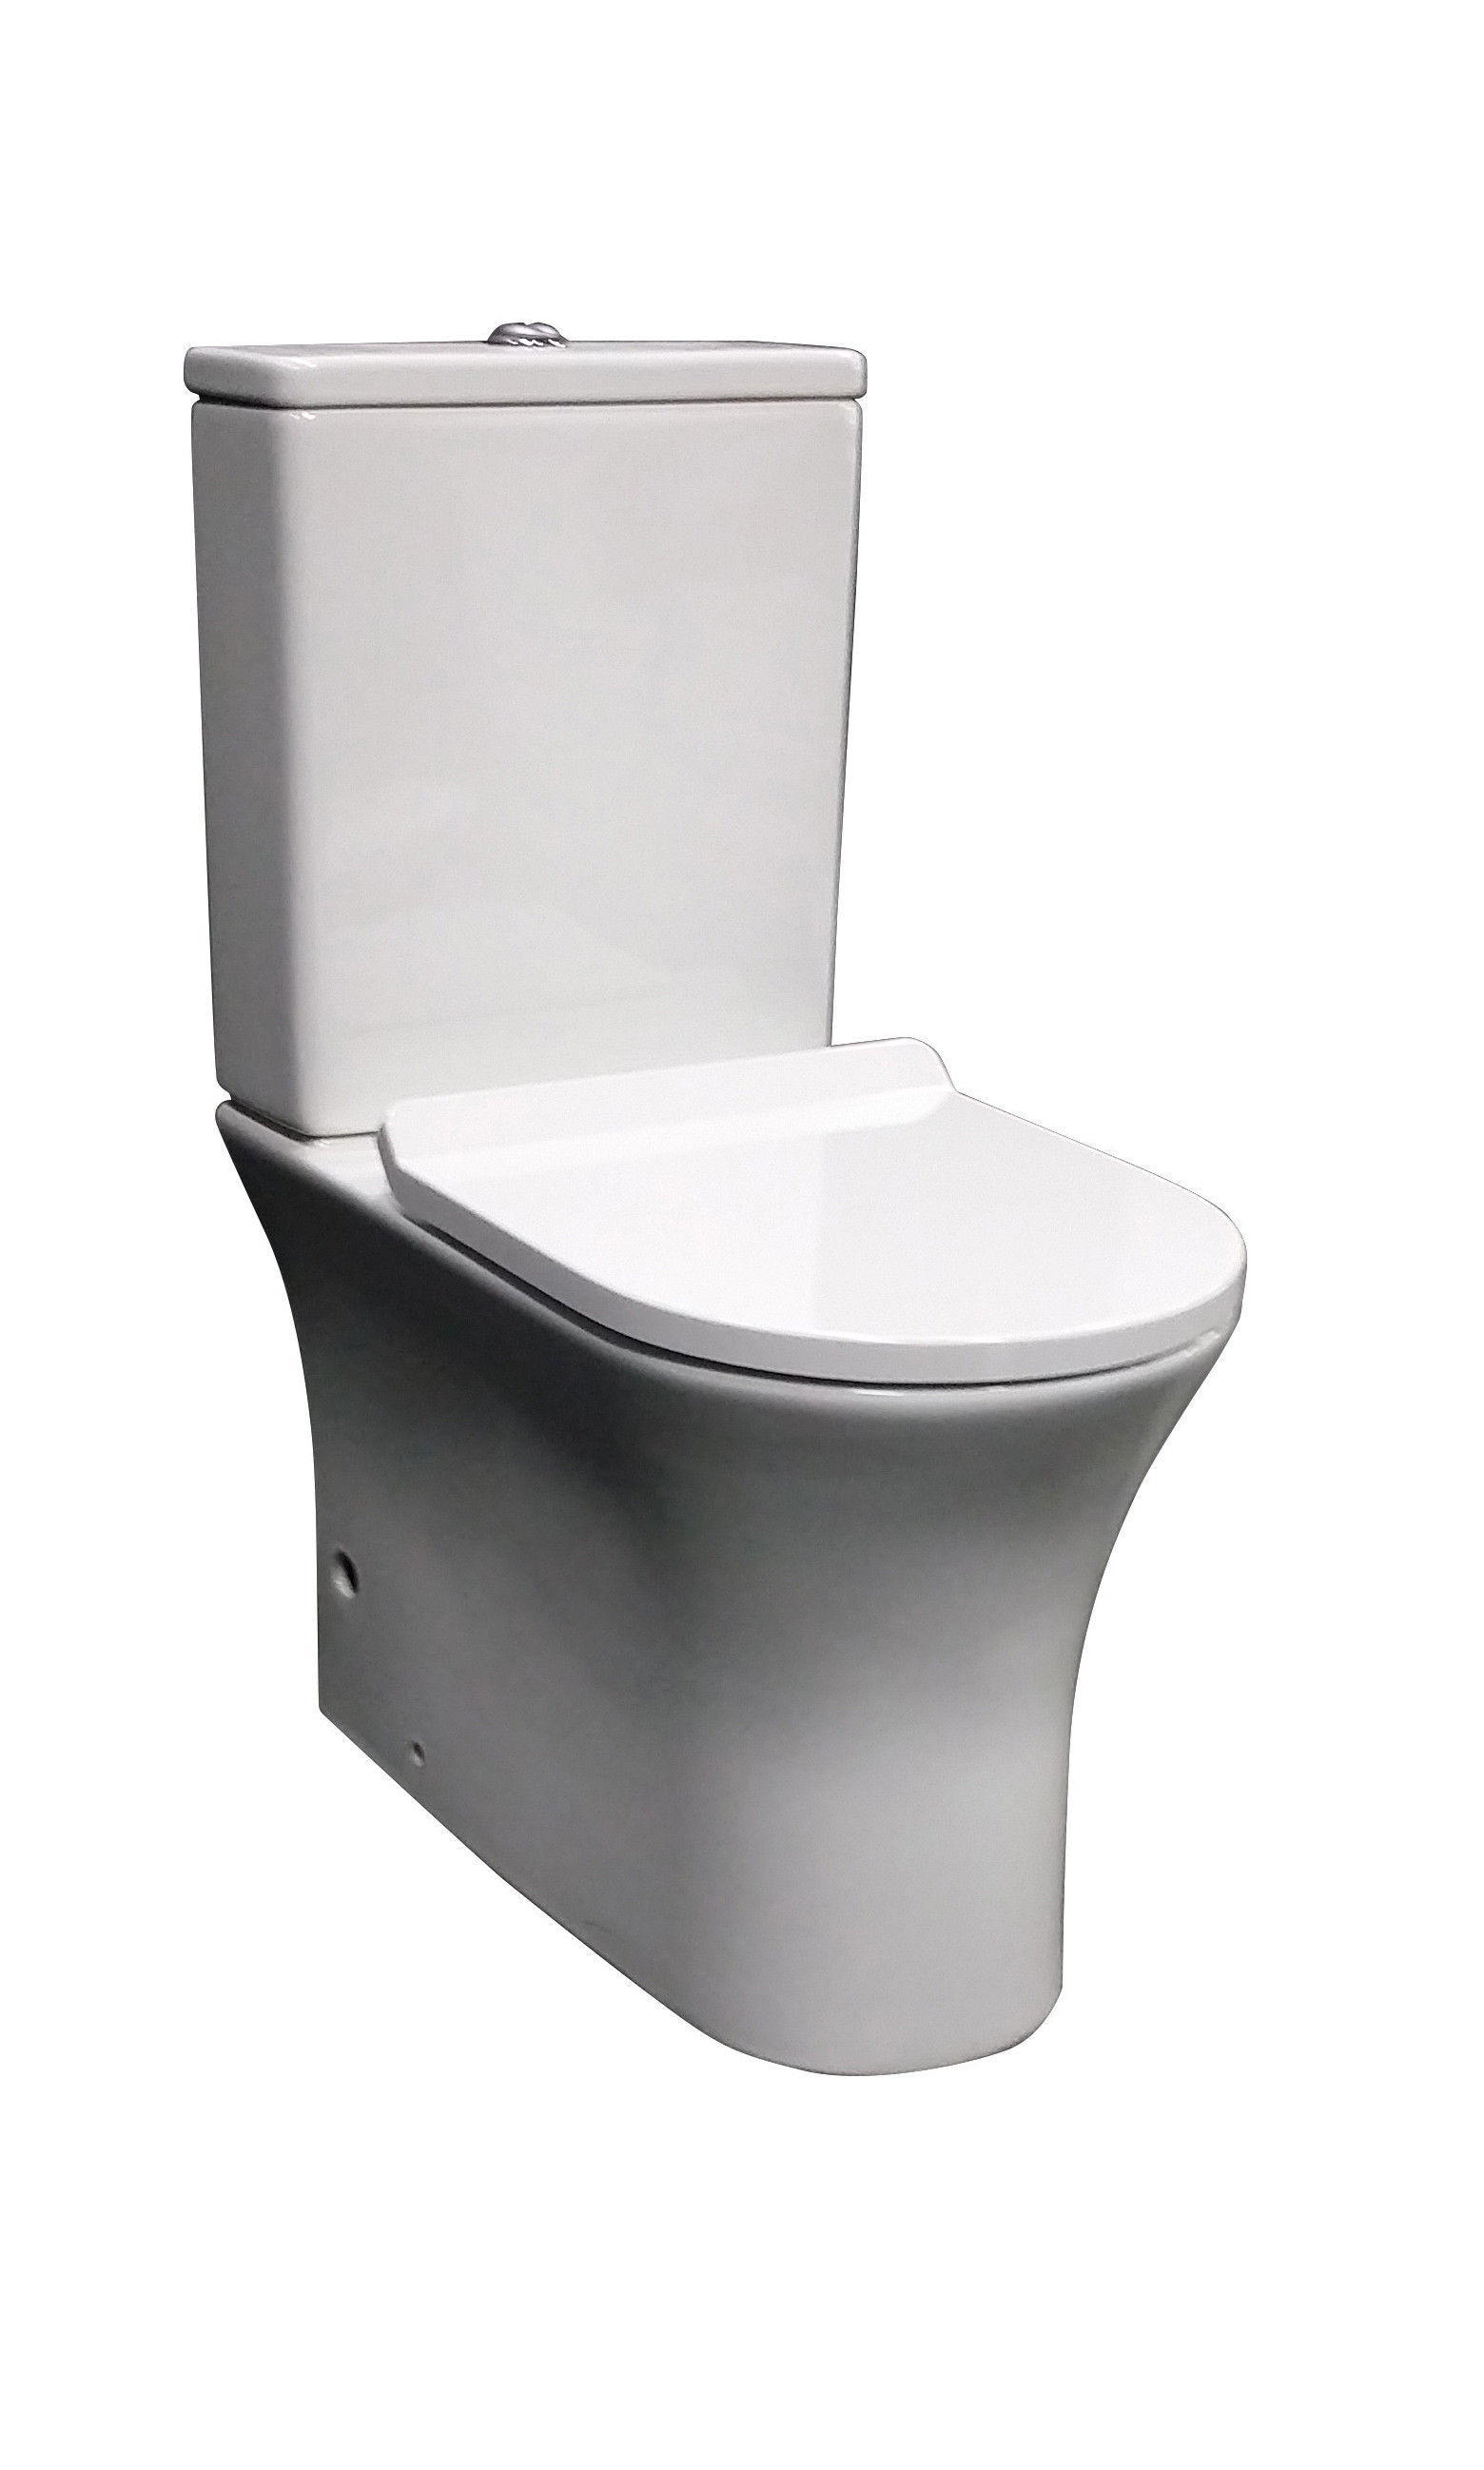 PN700 Slim Wall Faced Suite Image  White Background. Toilet Suites Archives   PARISI Bathware and Doorware